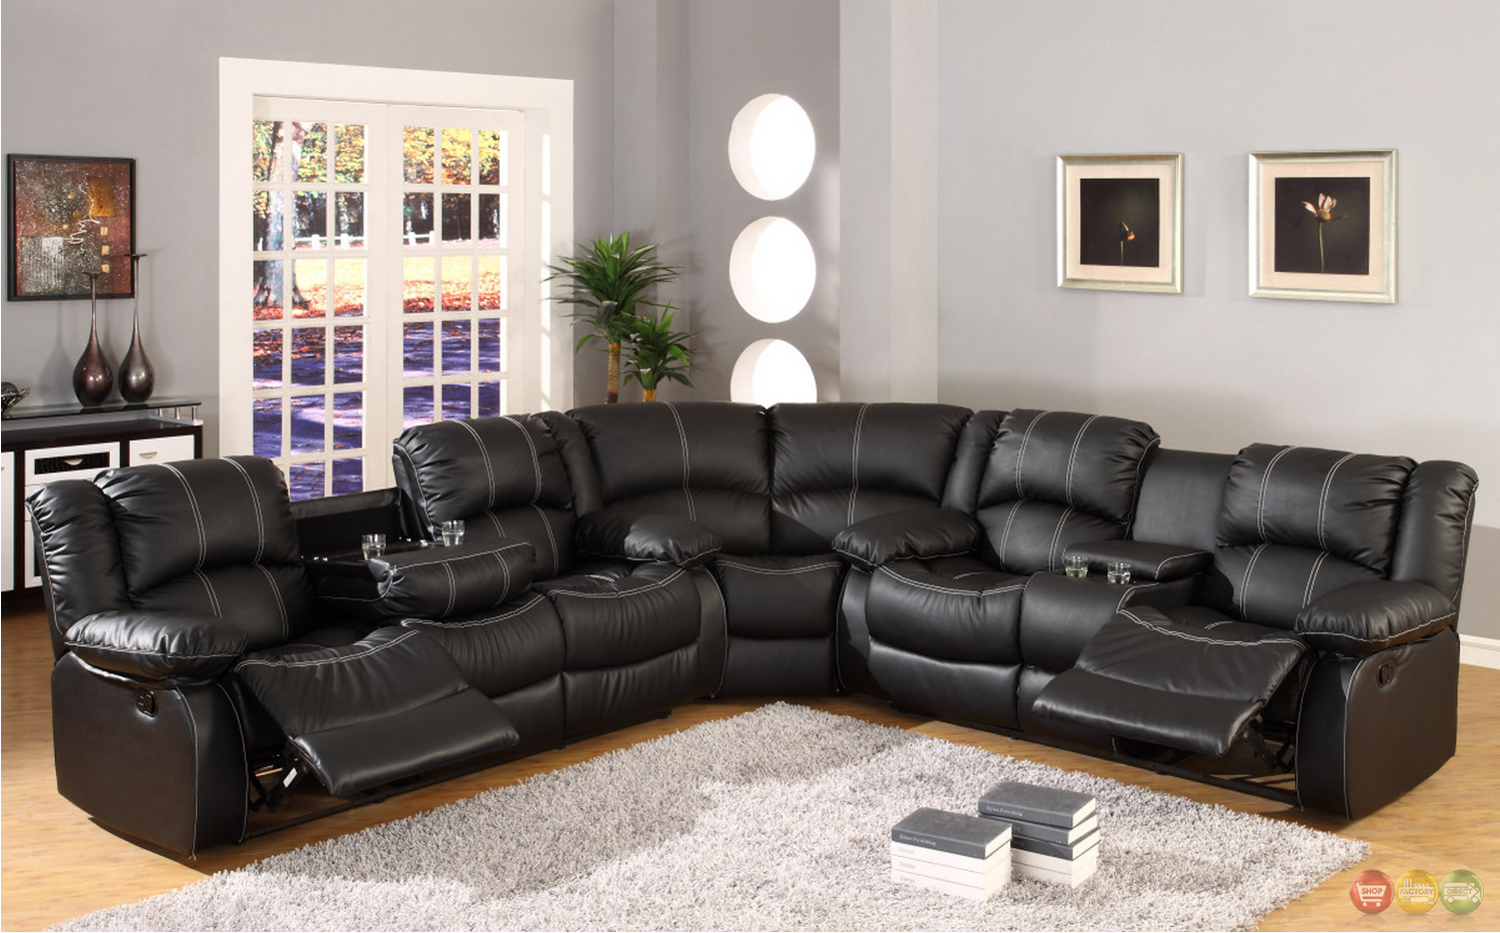 Black Faux Leather Reclining Motion Sectional Sofa W Storage Console